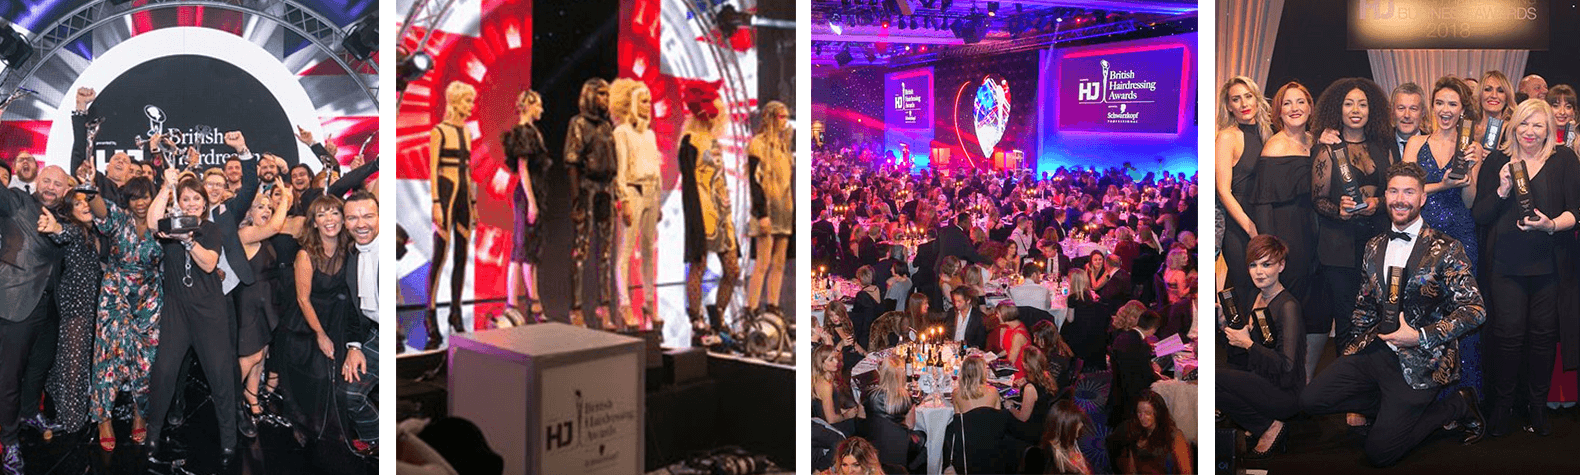 hj british hairdressing awards images.png